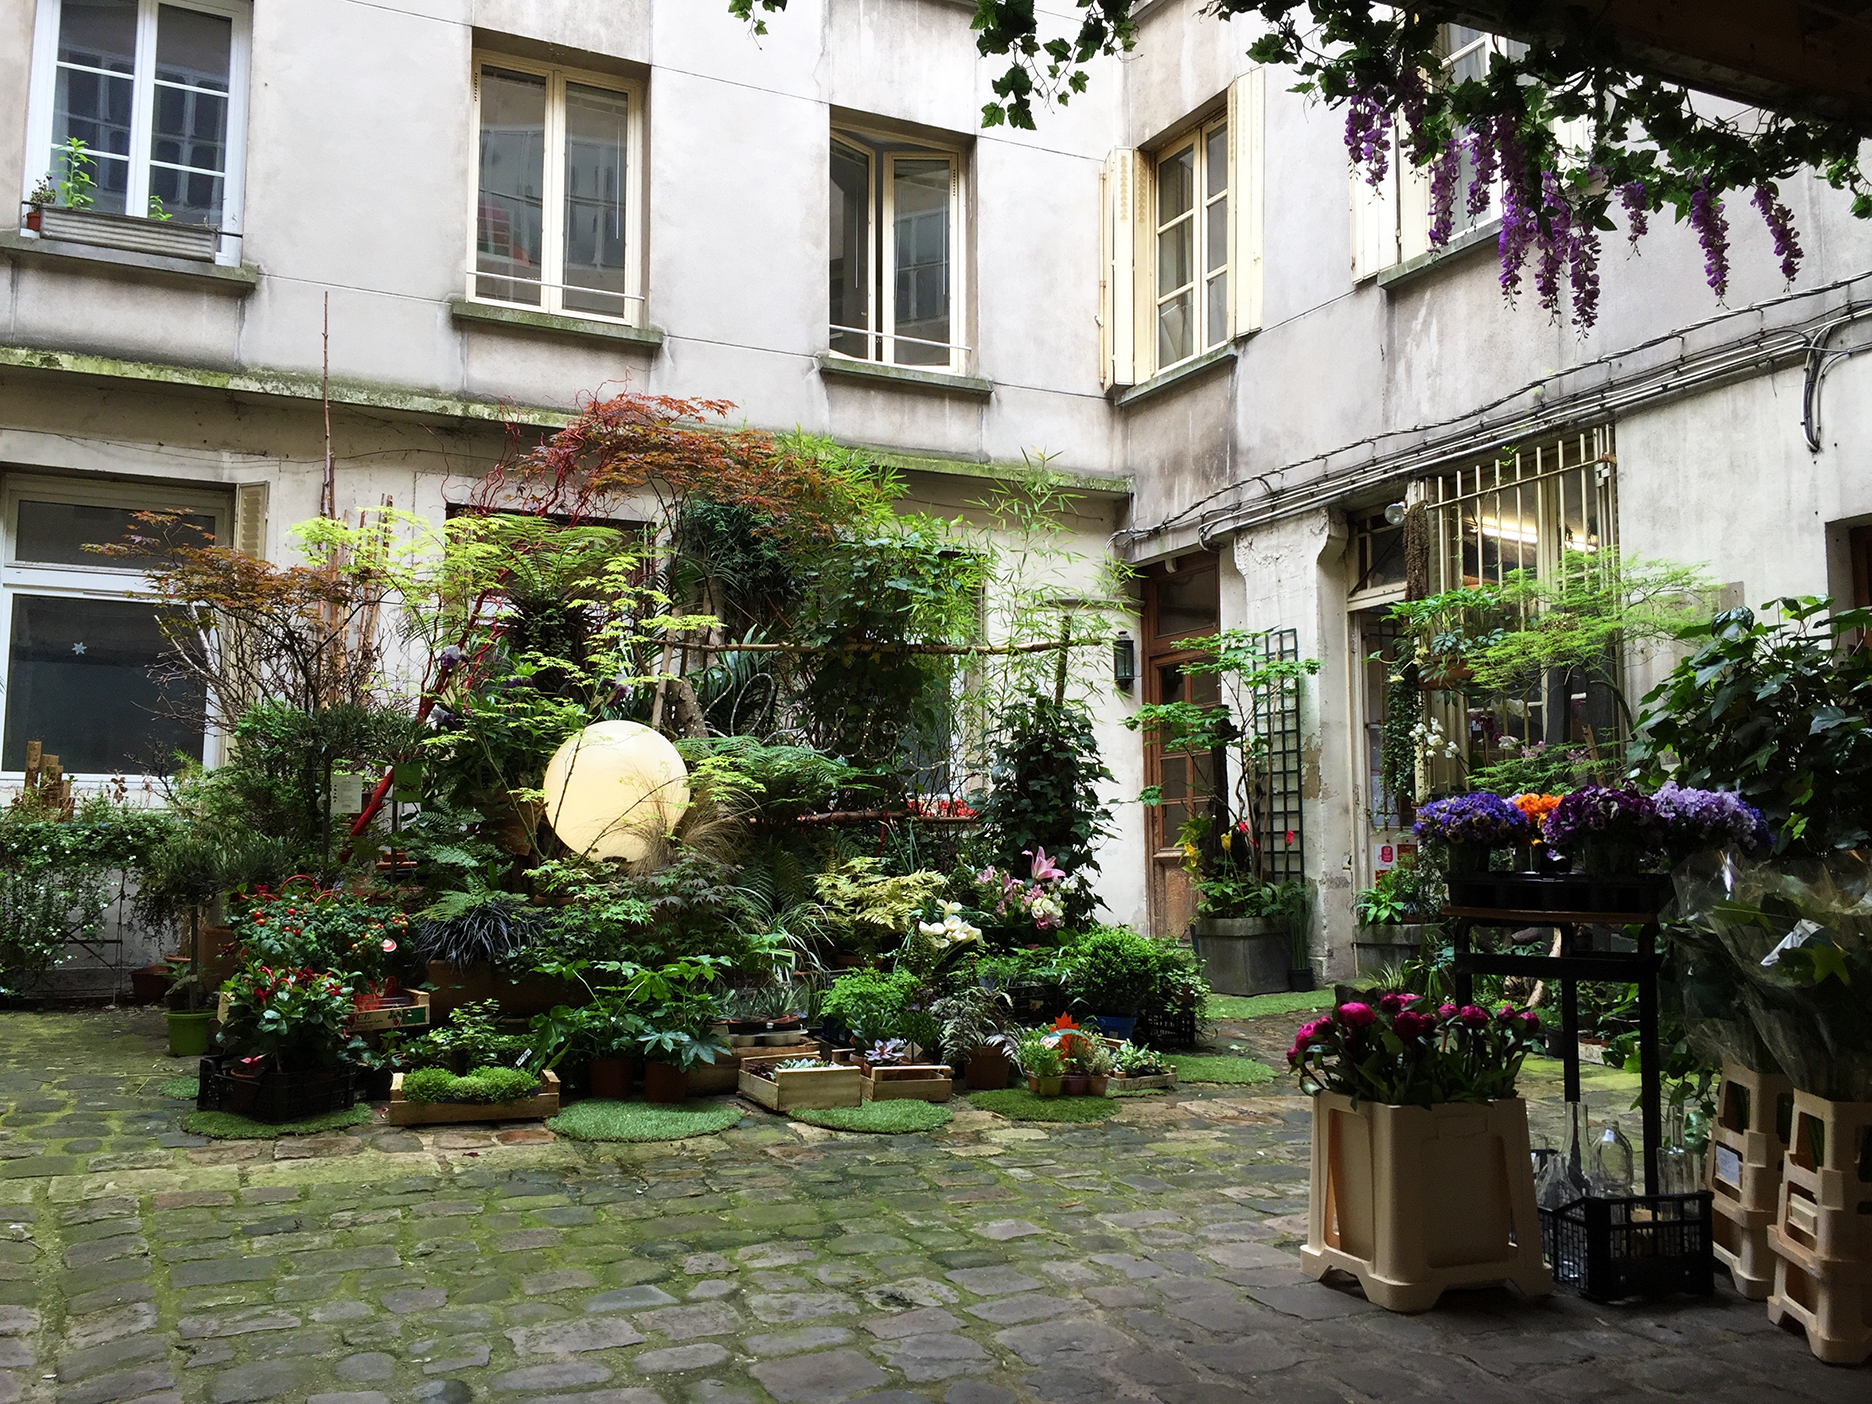 Floral shop tucked in a courtyard